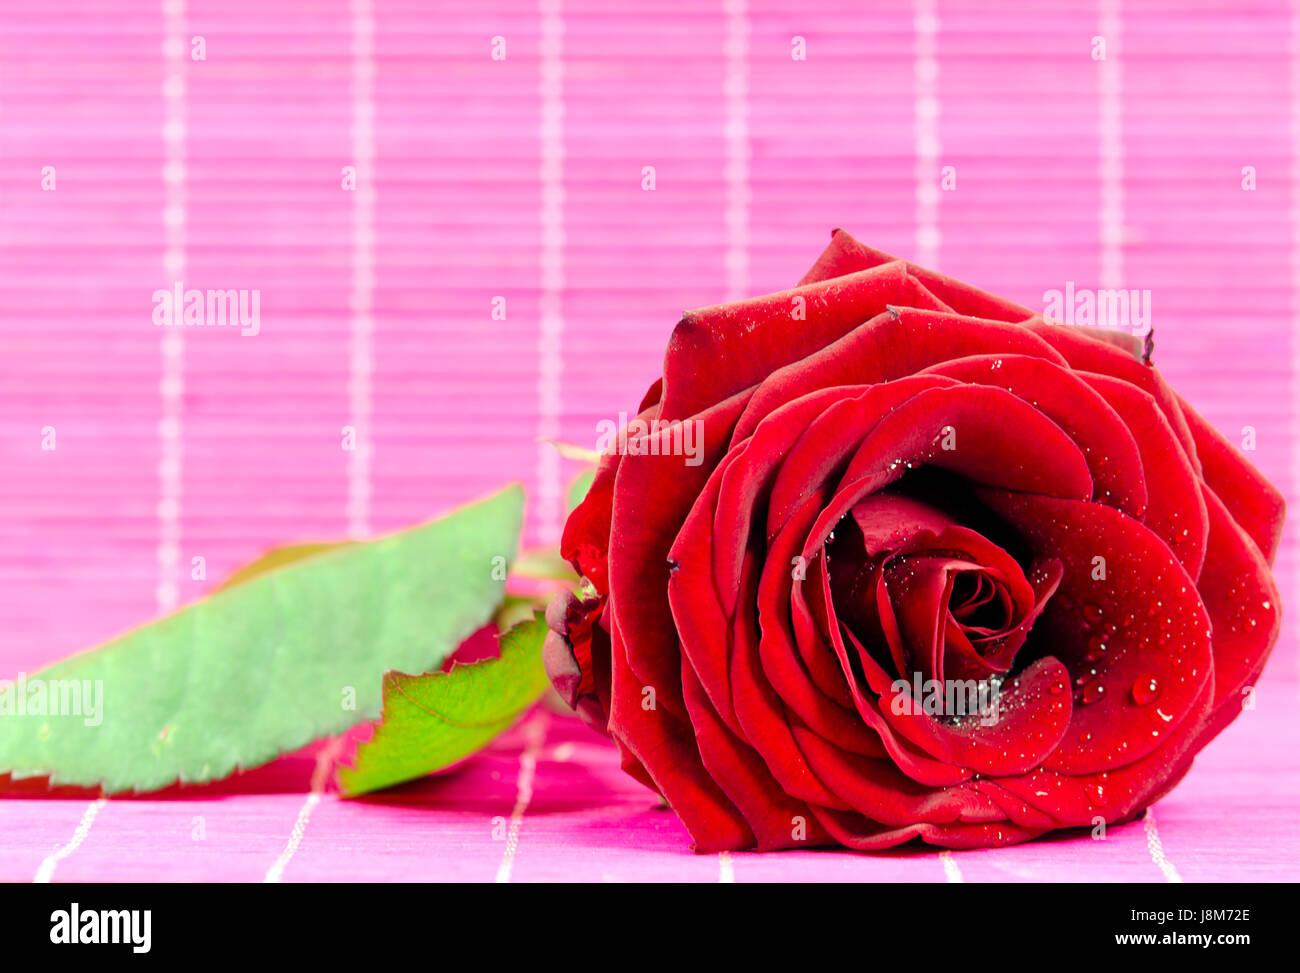 flower, plant, rose, romantic, amour, valentine, red, pink, flower, plant, - Stock Image